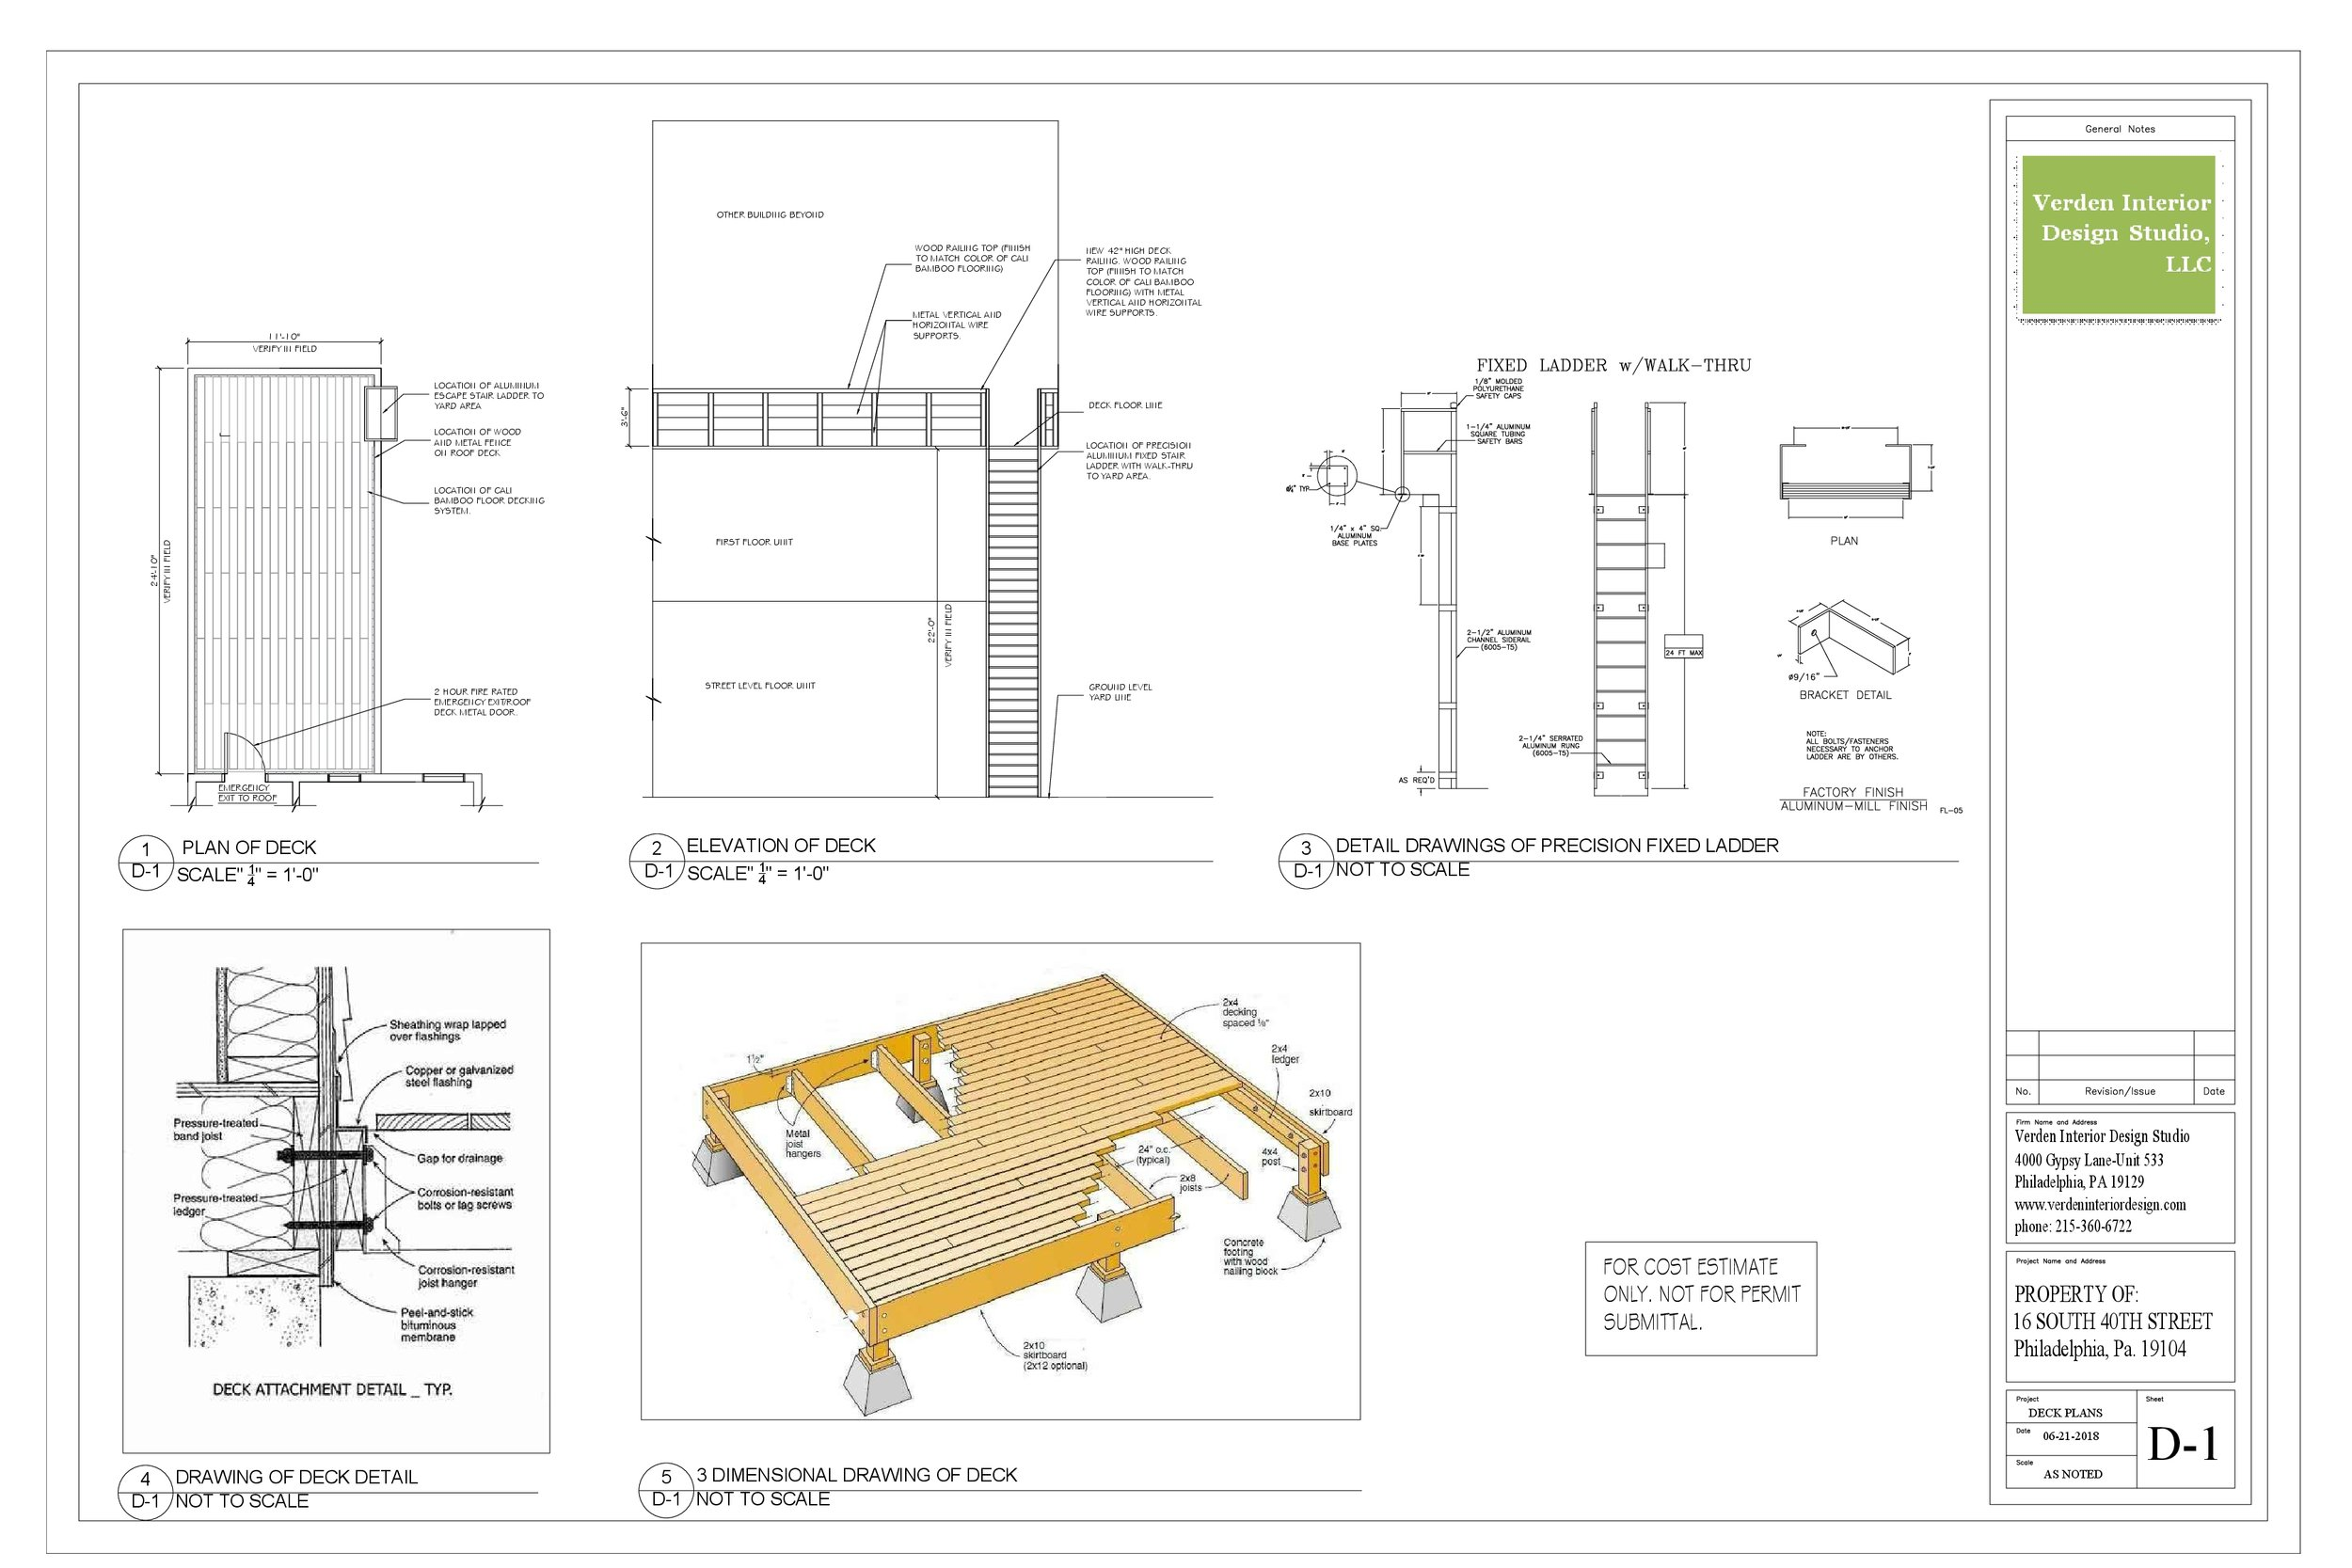 cad space plans_16south40th-D-1.jpg